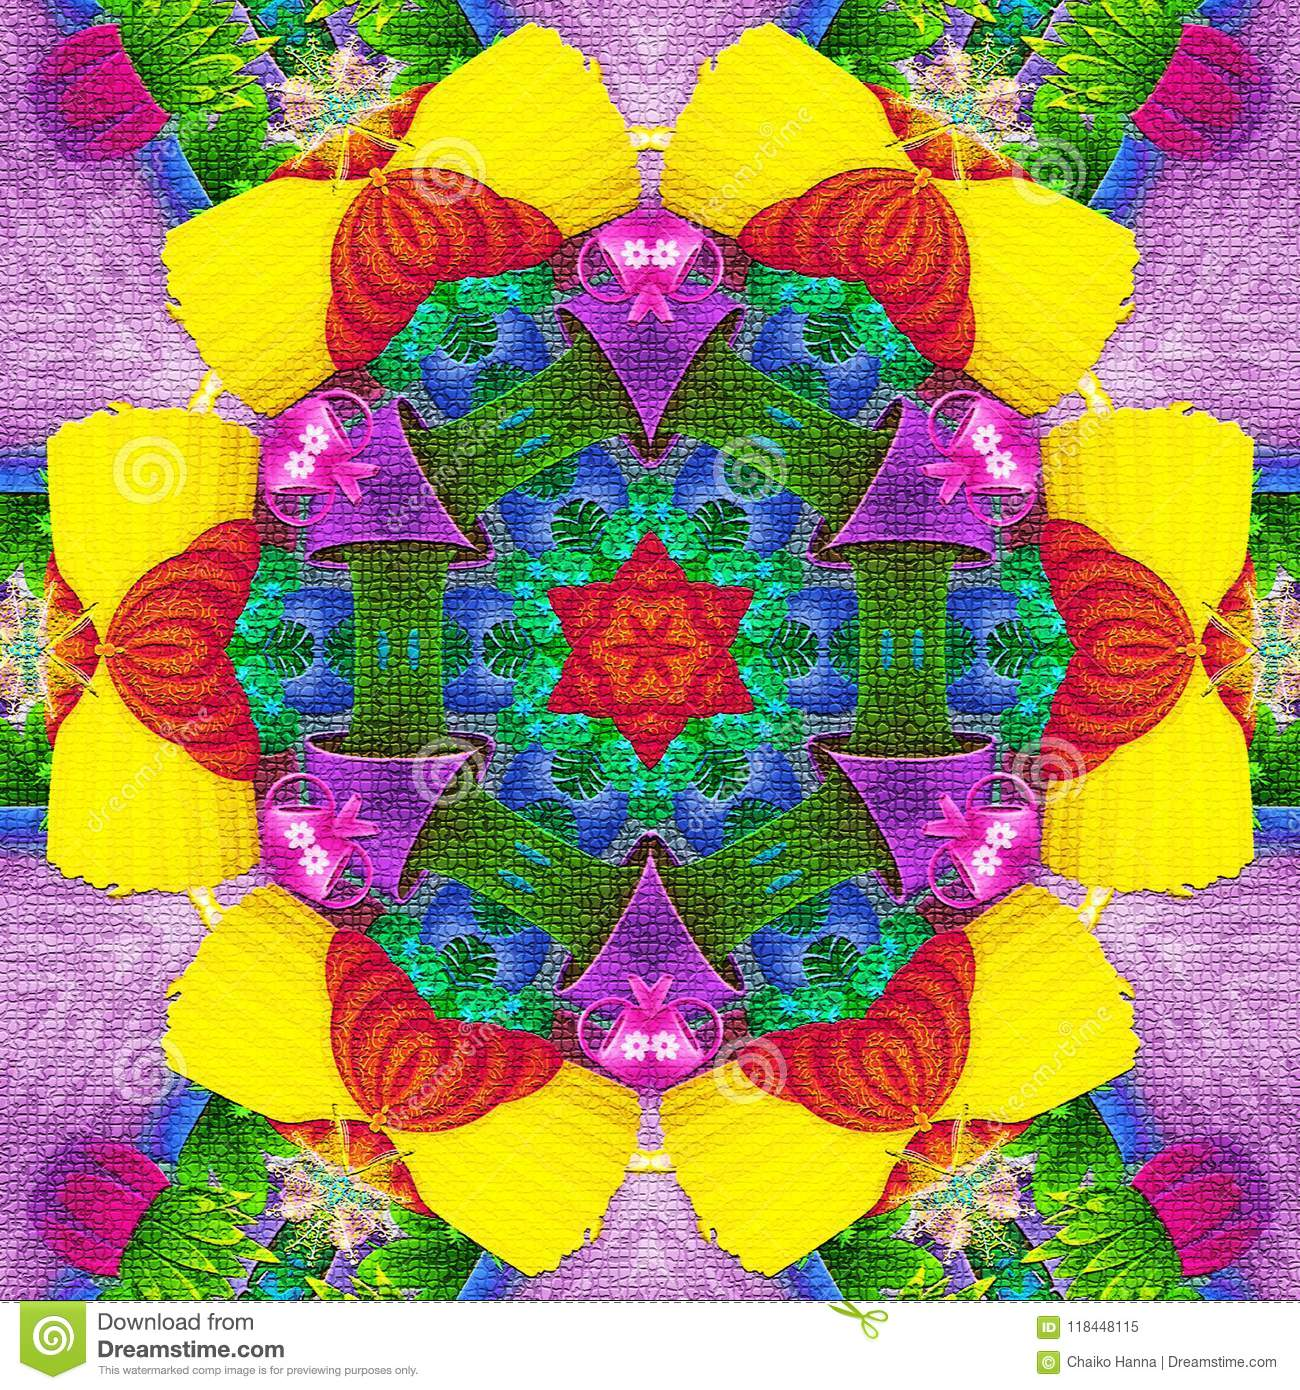 Abstract rosette kaleidoscope in brilliant green, blue, neon, yellow, red and magenta